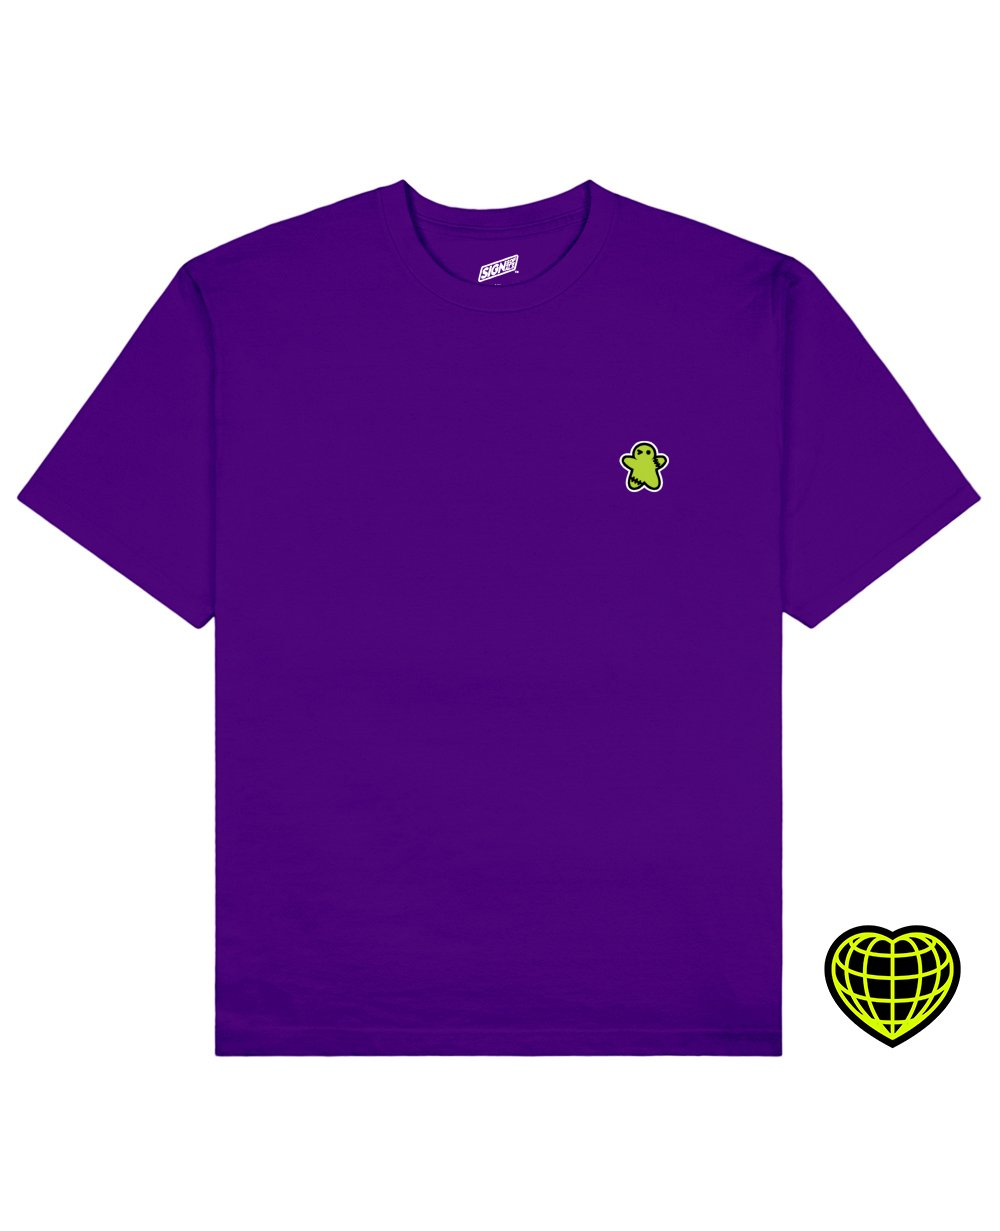 The Biscuit man Print T-shirt in Purple - T-Shirts - Signs of Signals - BRANMA